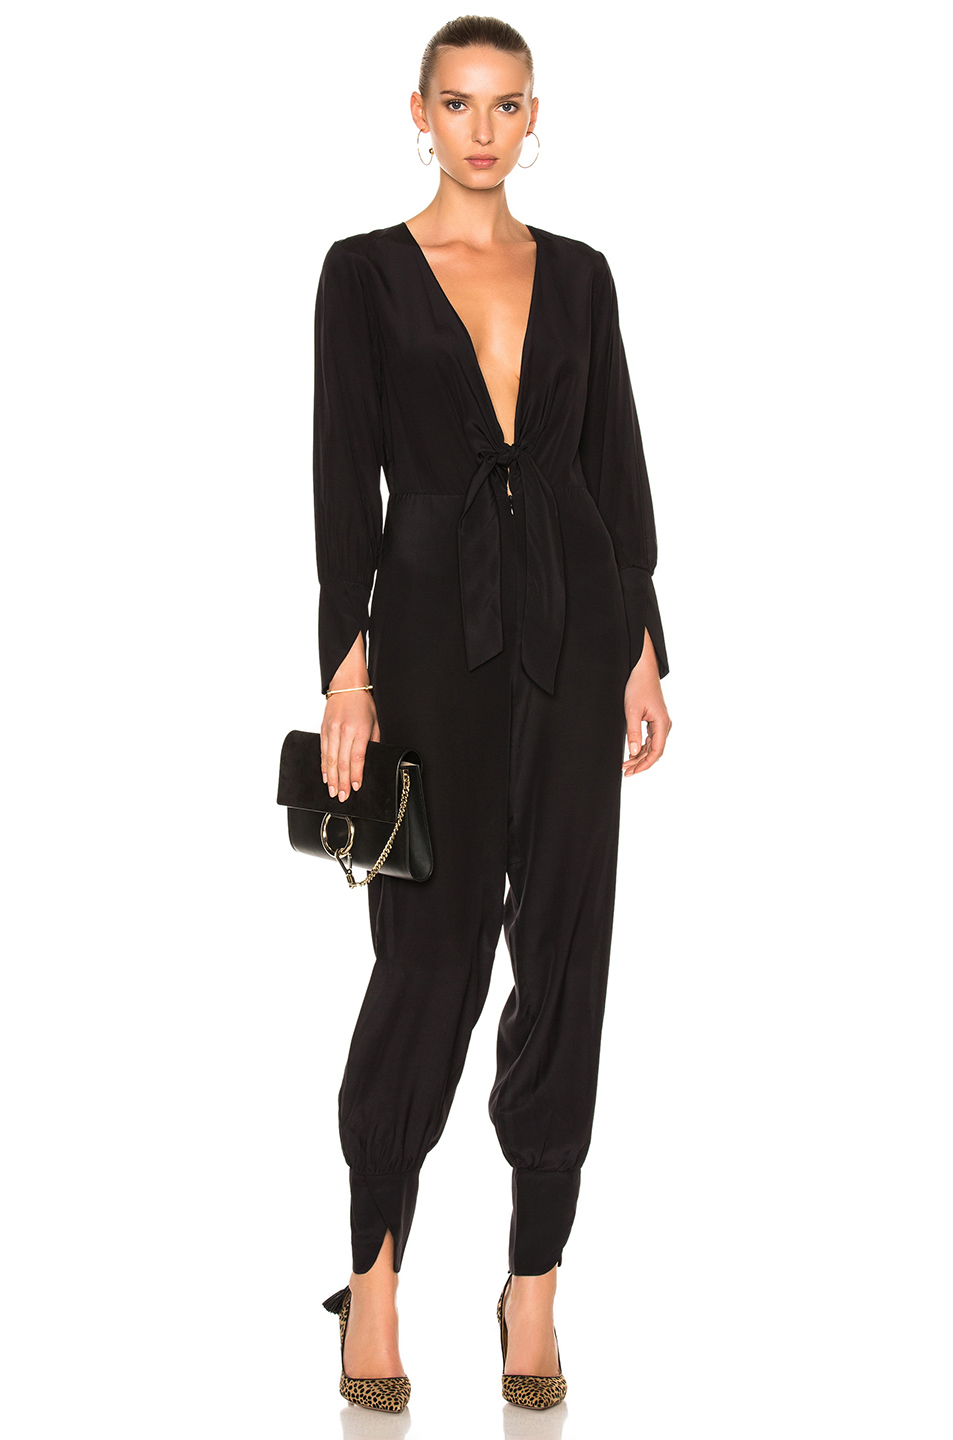 ADRIANA DEGREAS Solid Jumpsuit in Black